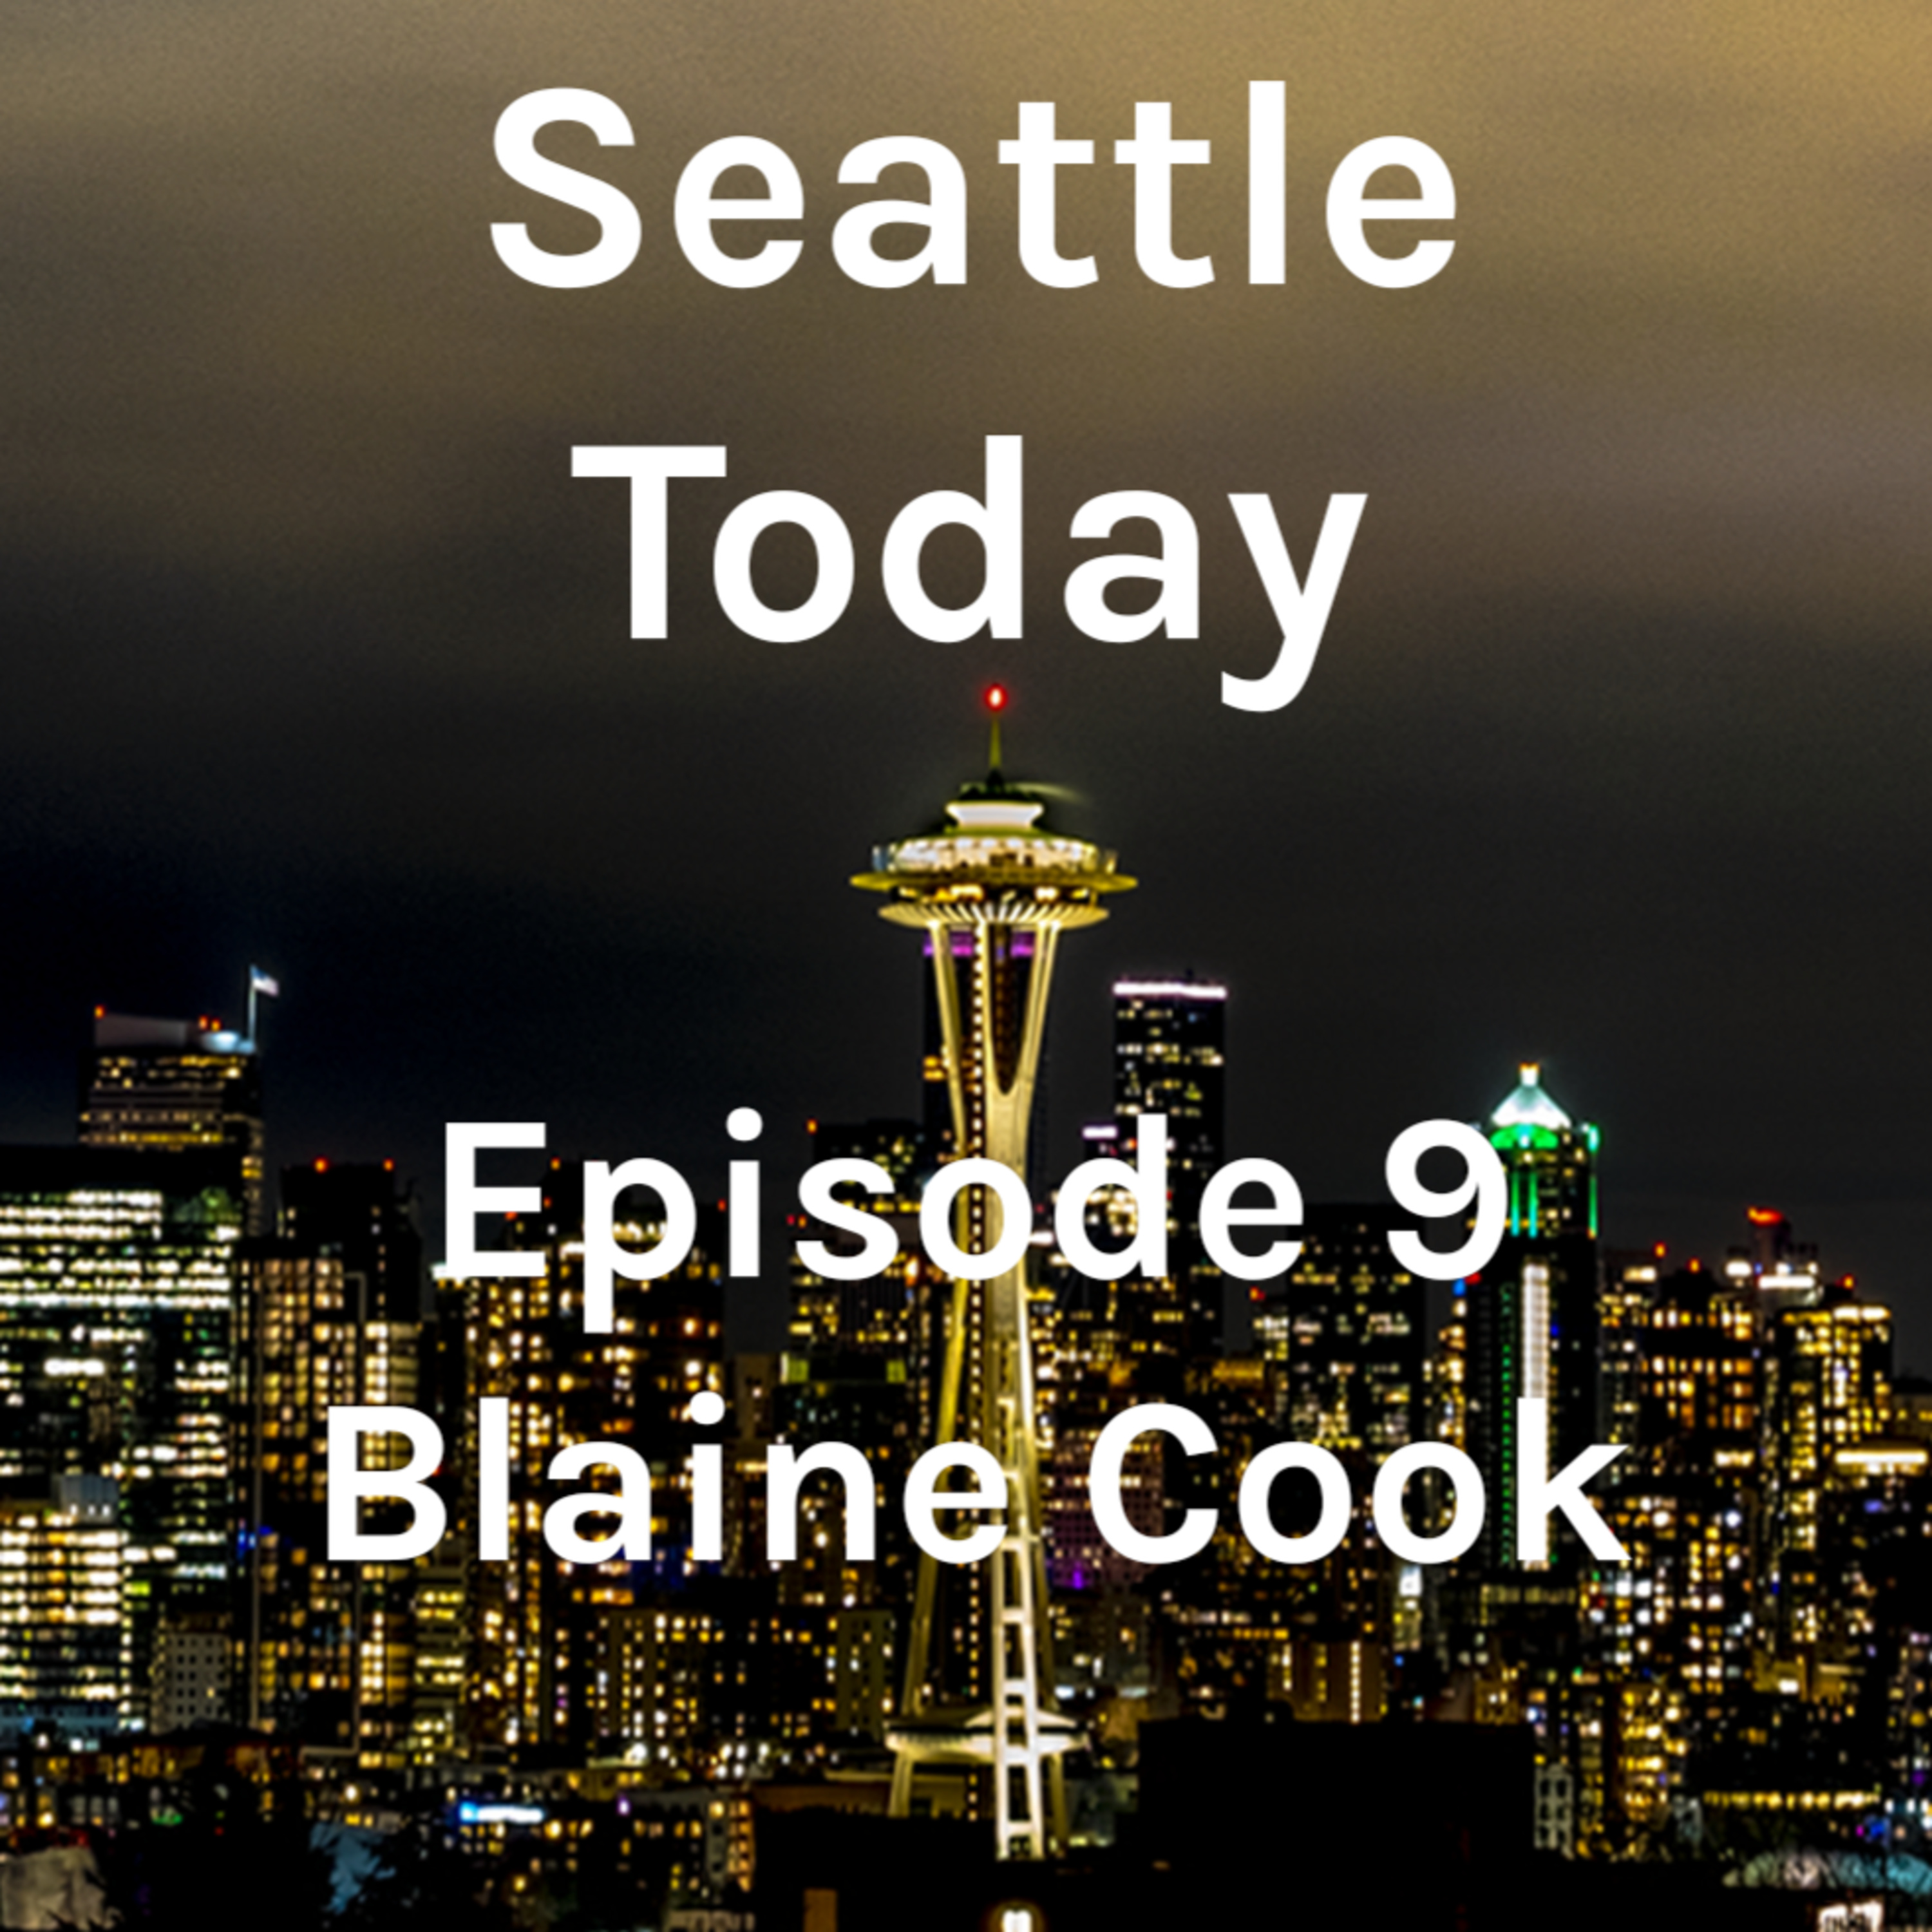 Seattle Today Episode 9 - Blaine Cook